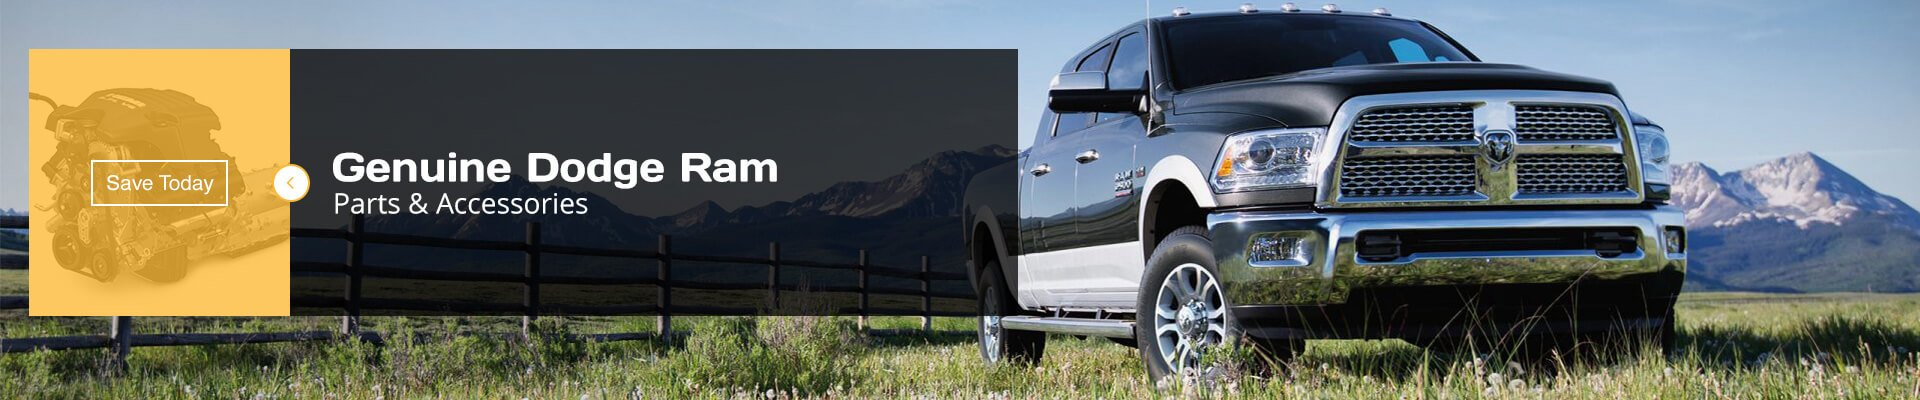 Dodge Ram Genuine Parts & Accessories